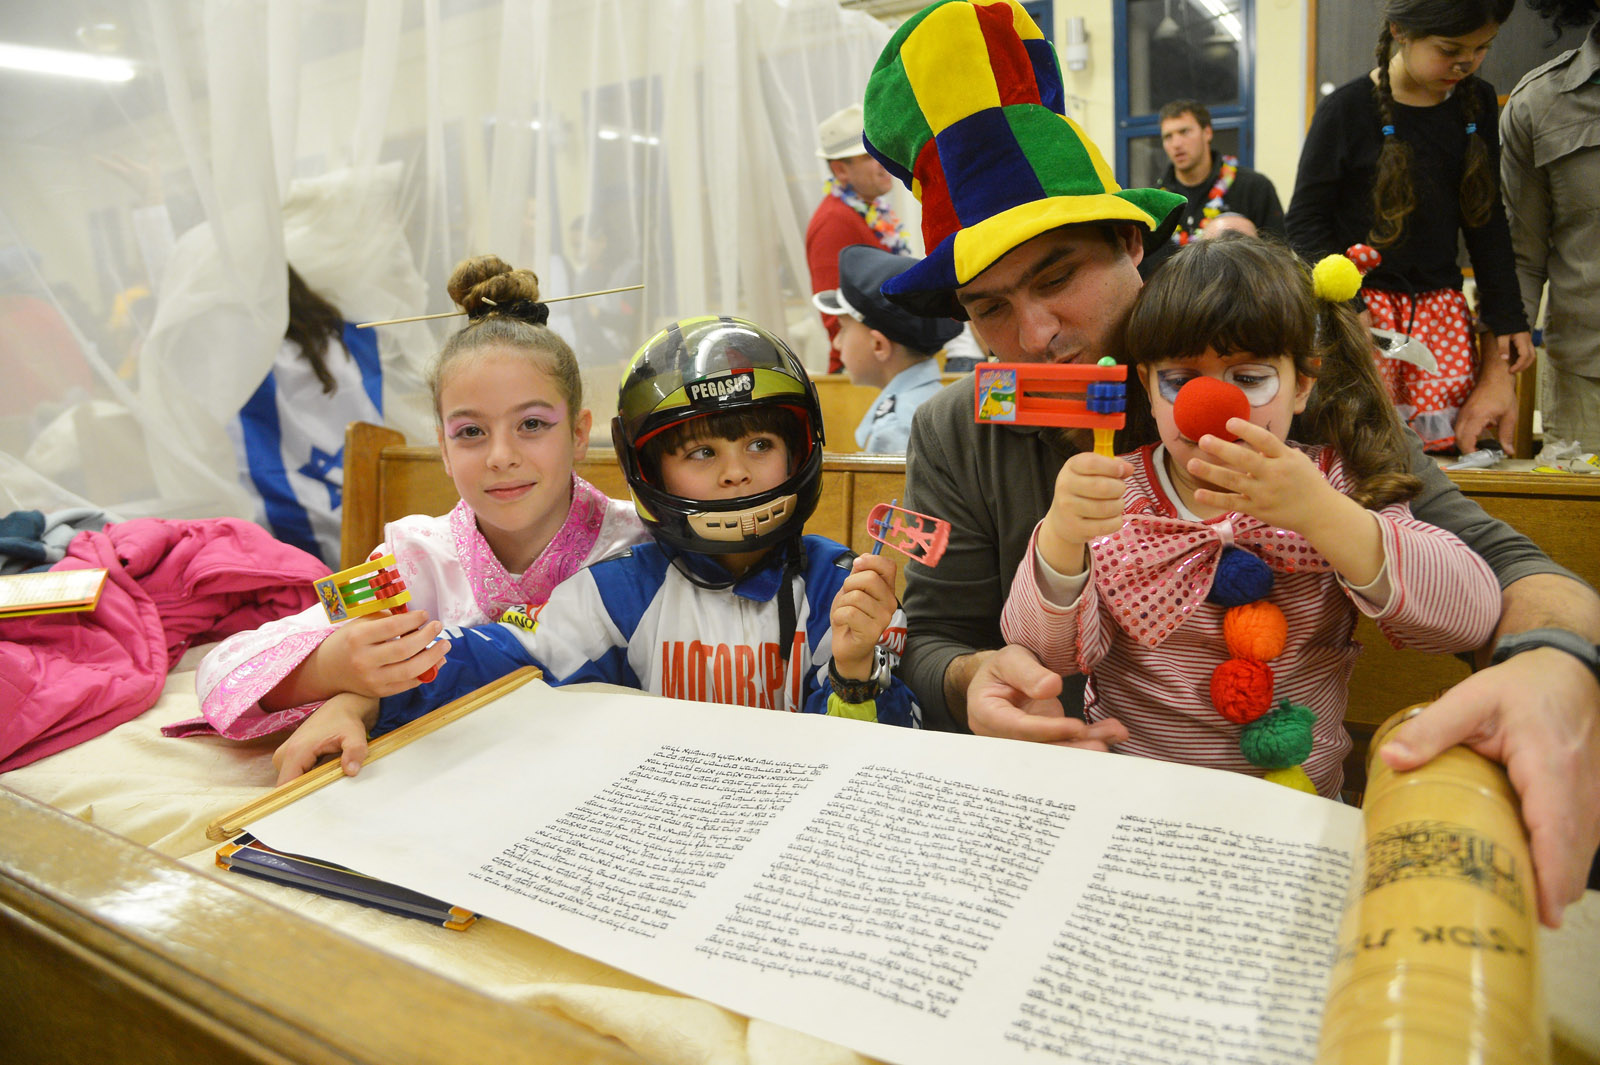 Reading the Megillah. Photo by Yossi Zeliger/FLASH90